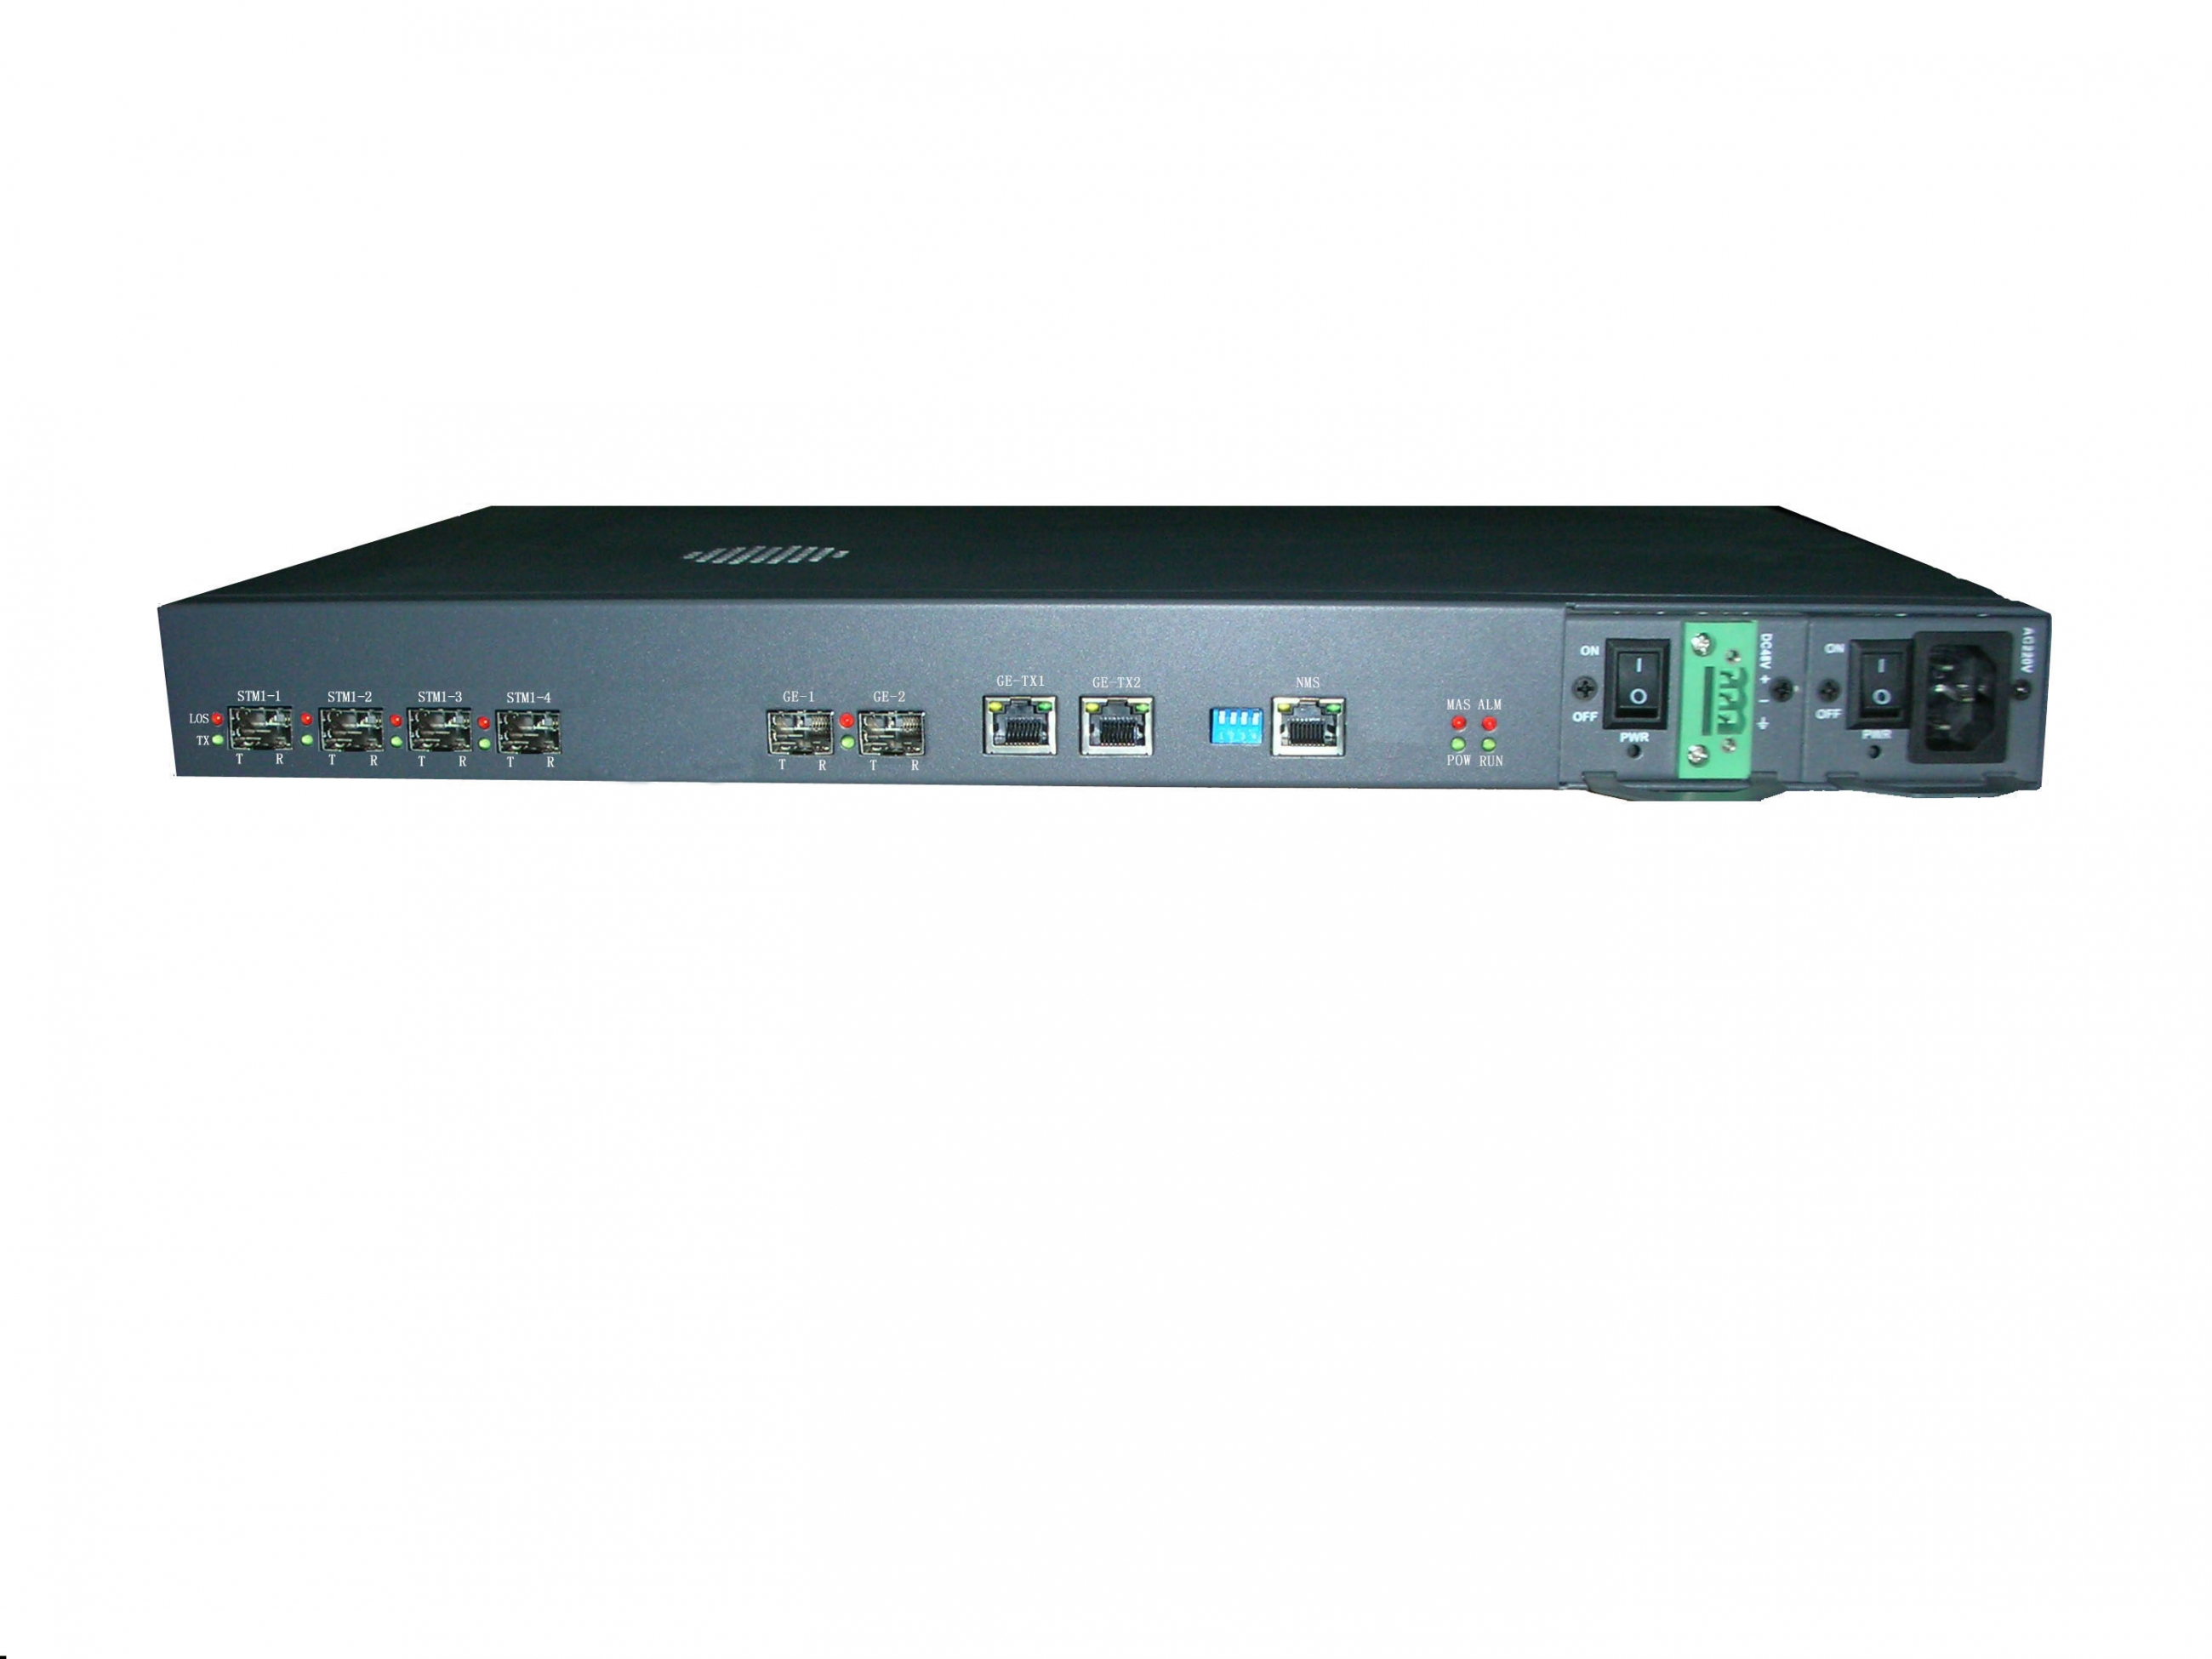 STM-1 to Gigabit Ethernet converter (EoS)